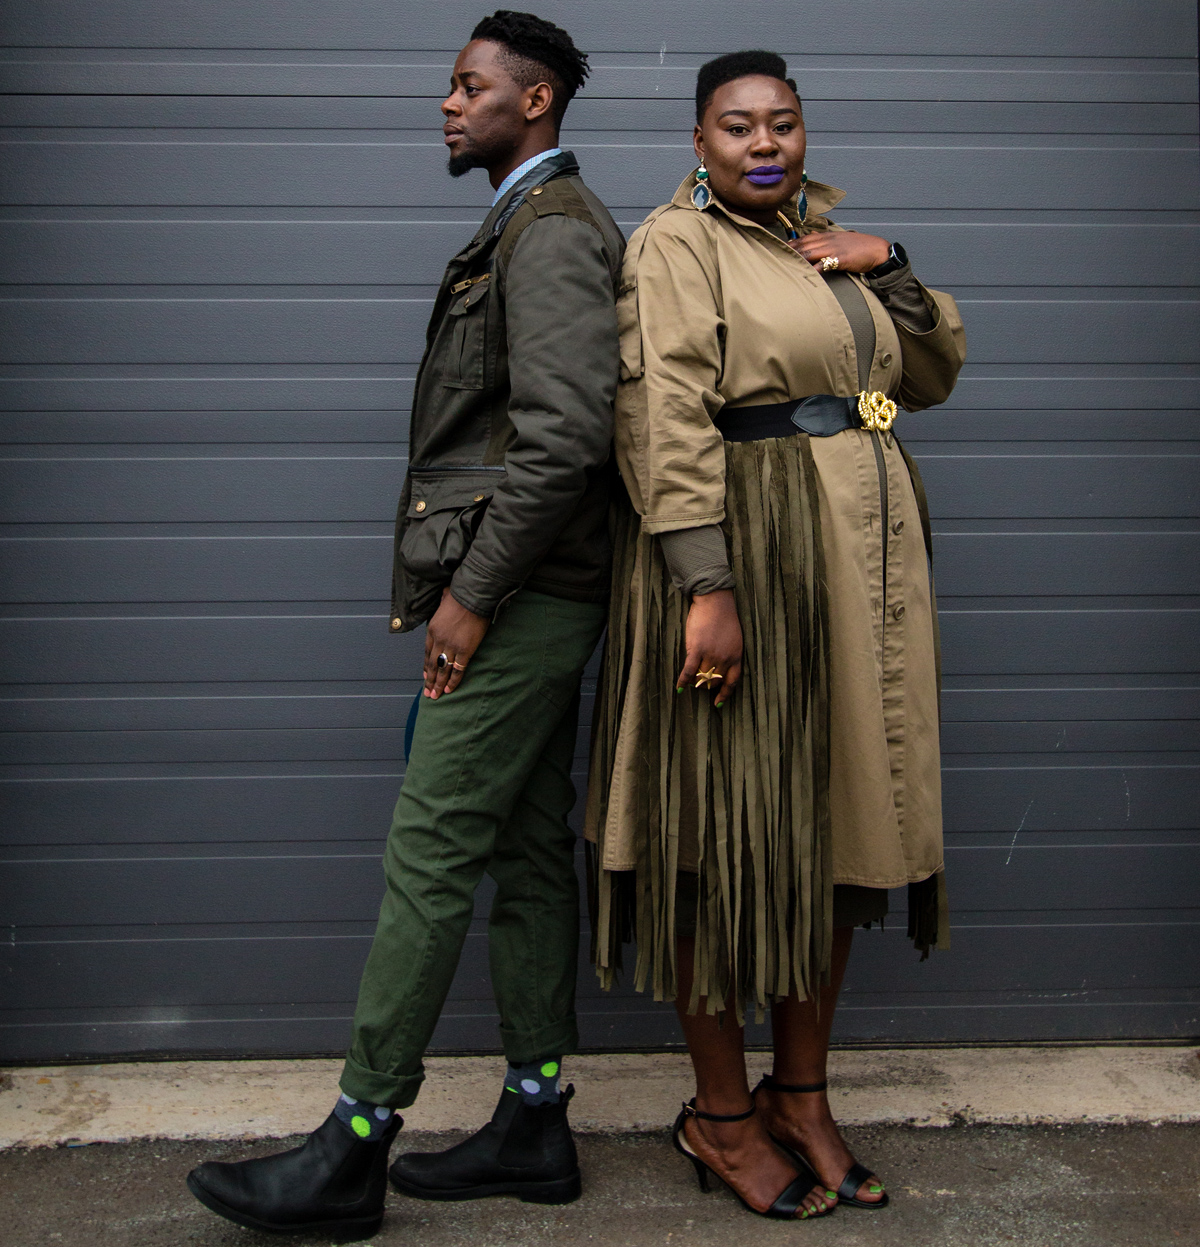 style twins olive green army green stylish duos stylish couples how to wear olive how to wear army green 08